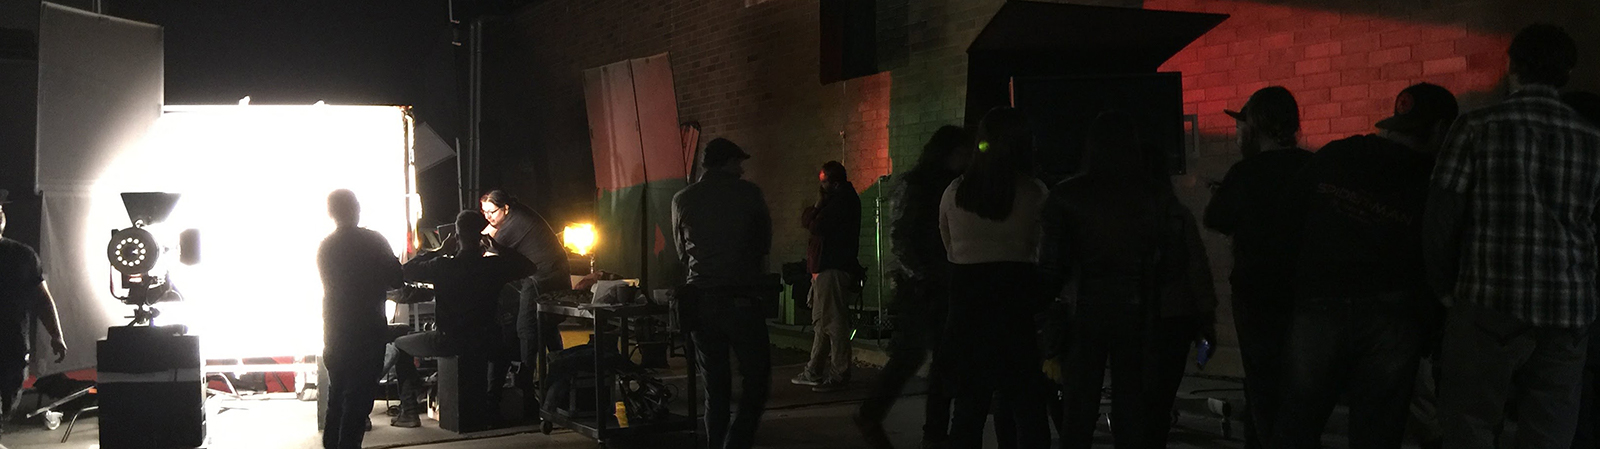 Cinema 7 Night Shoot